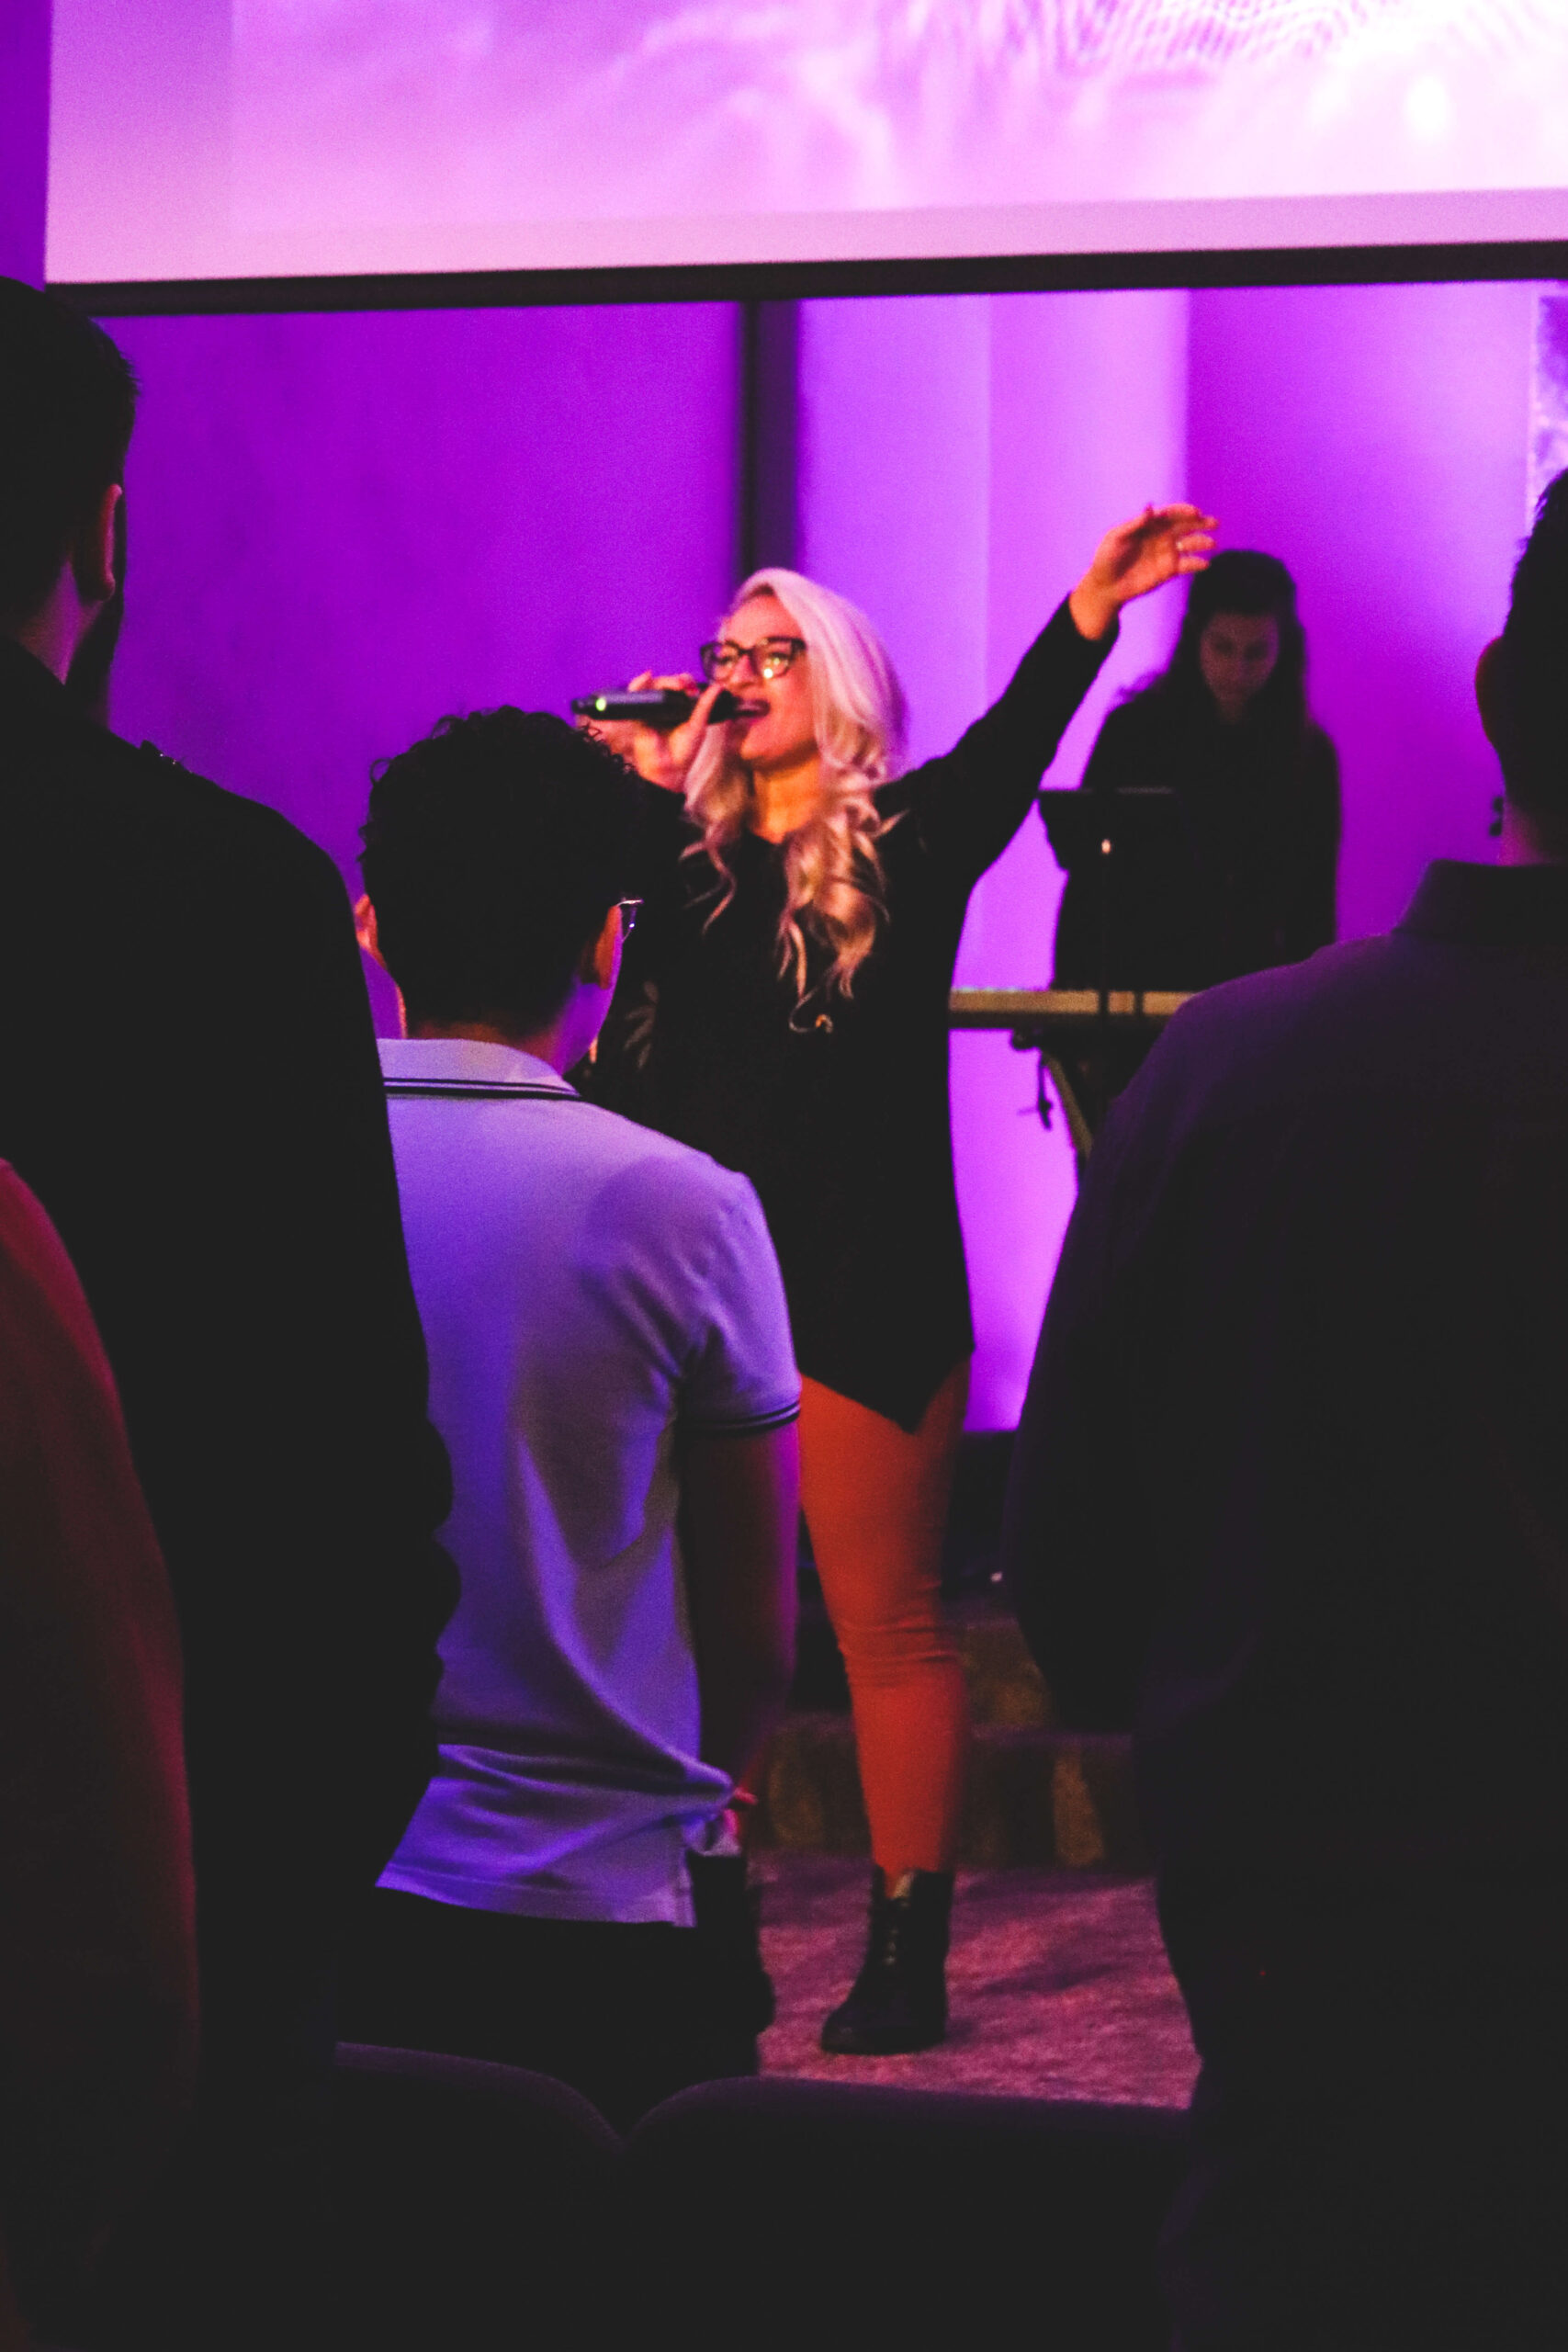 Young blonde woman leads worship with left hand raised.